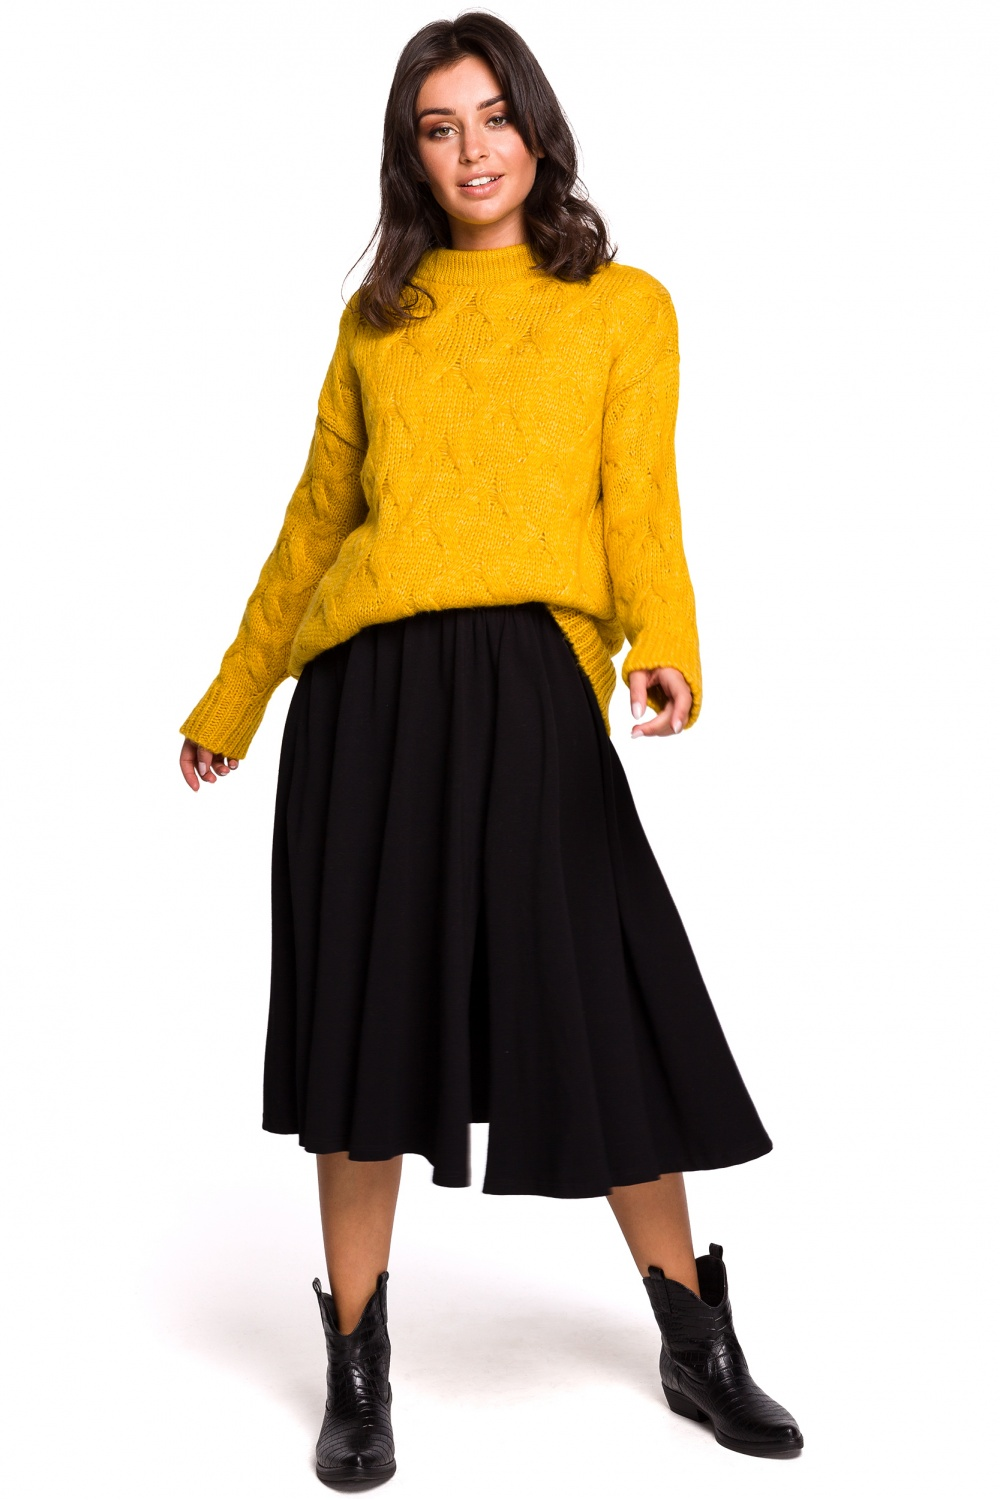 Pulover model 136421 BE Knit